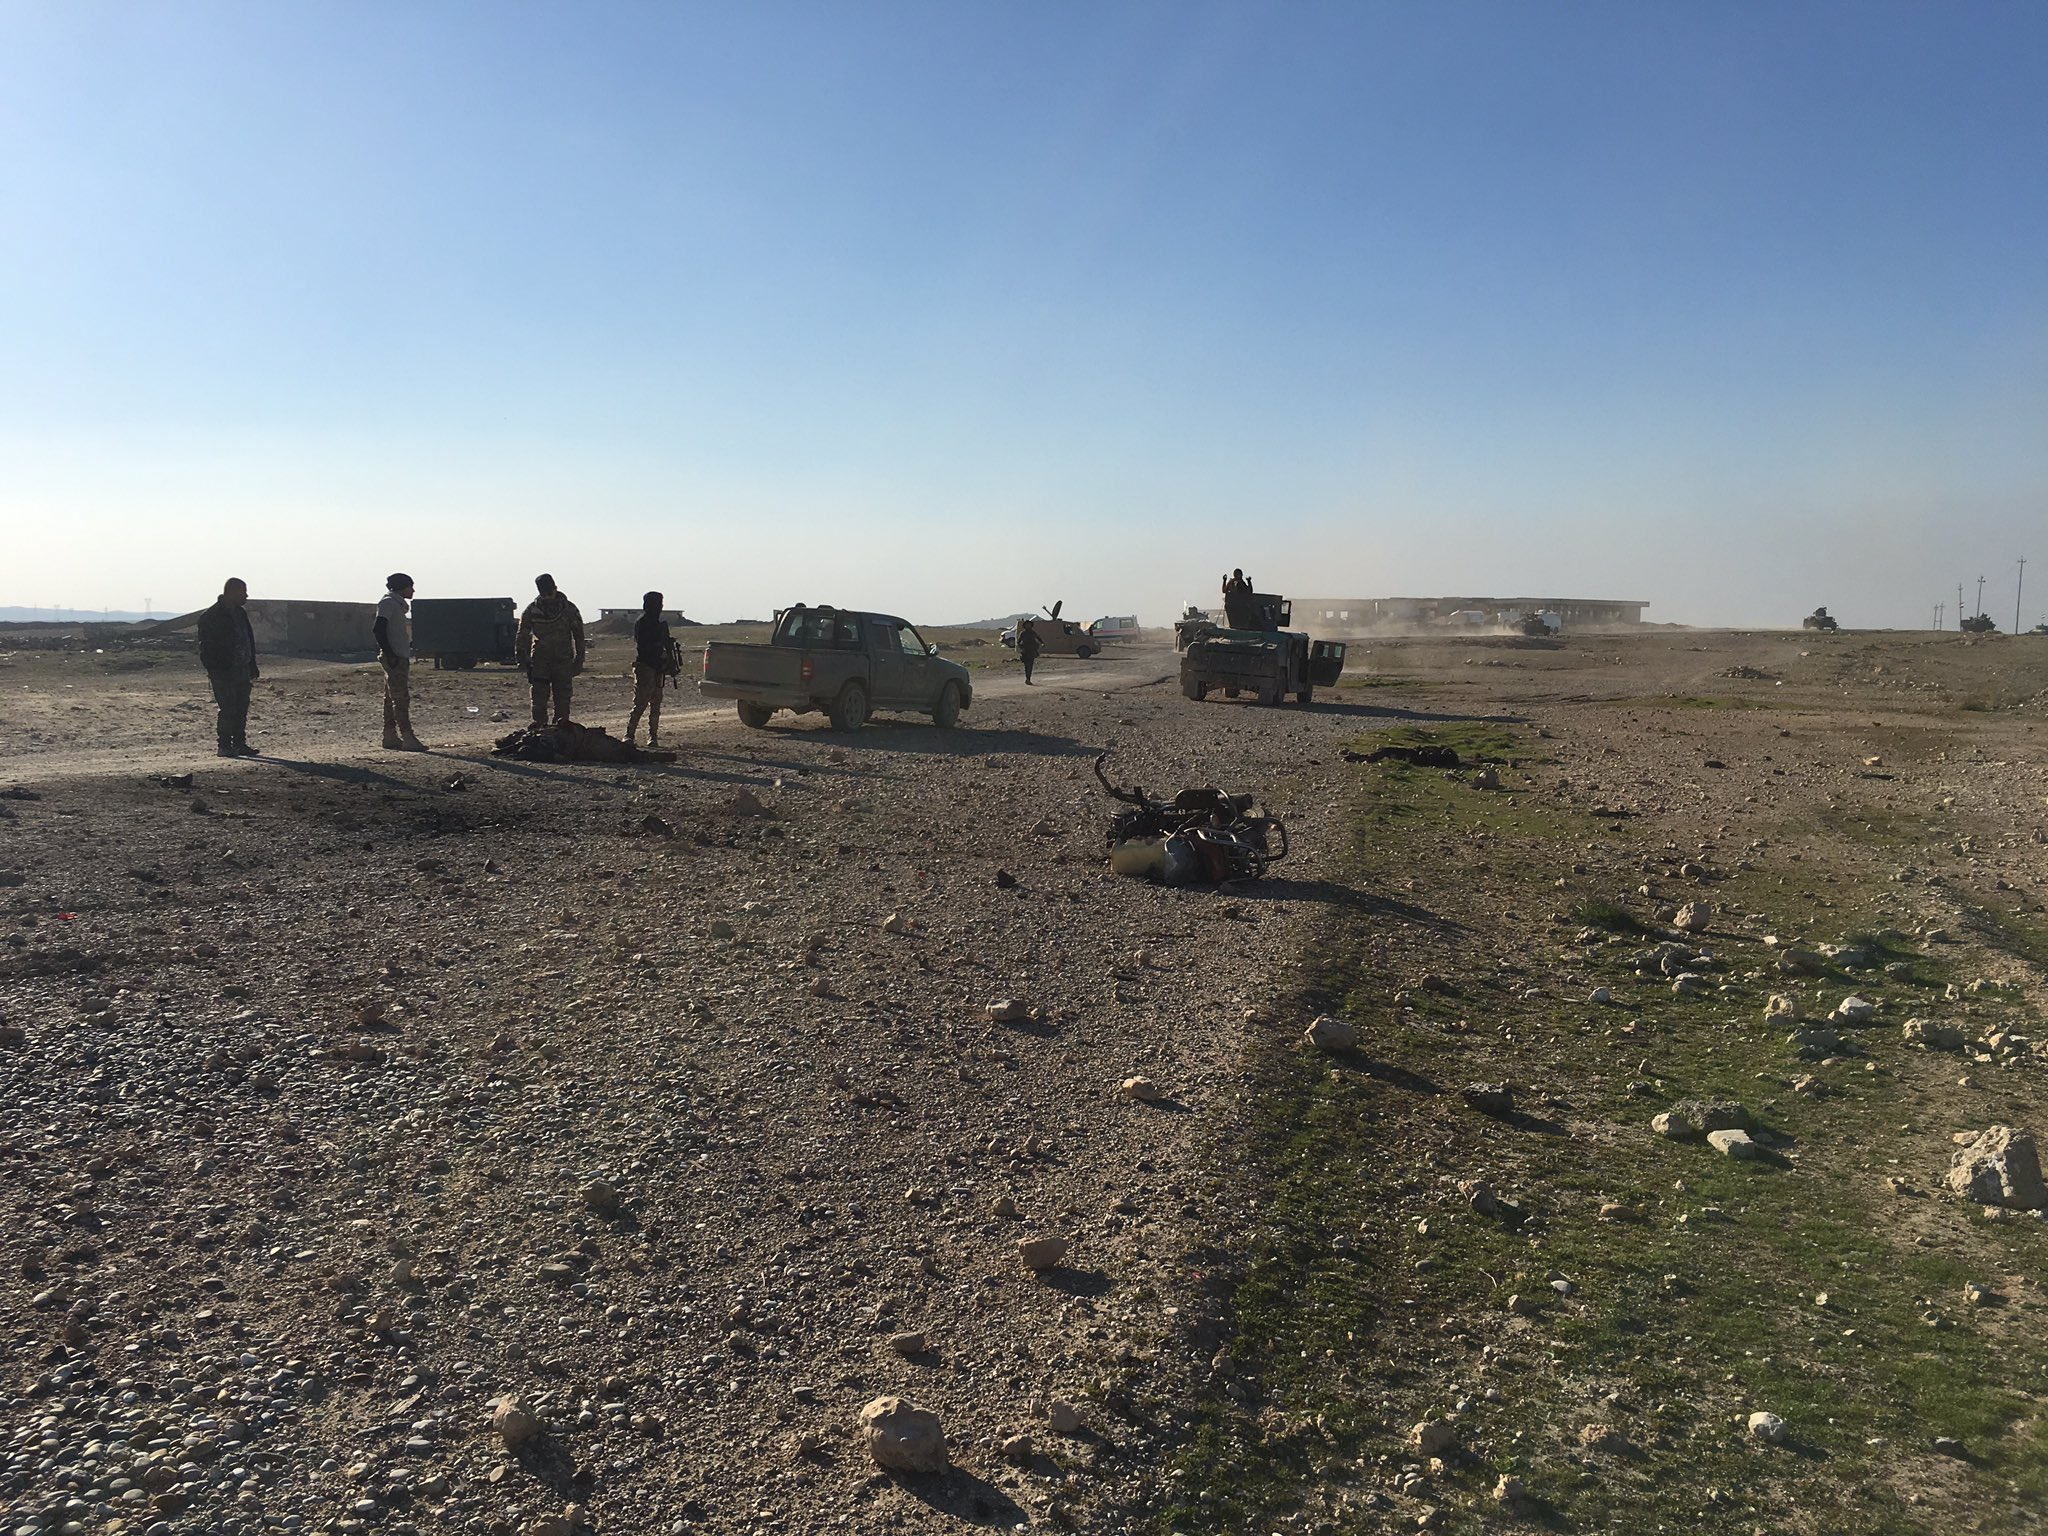 Graphic. Motorbike in the foreground, dead IS fighter to the left, and at the rear. Looks like an airstrike. Possibly cannon fire. https://t.co/TNM7jj30MP